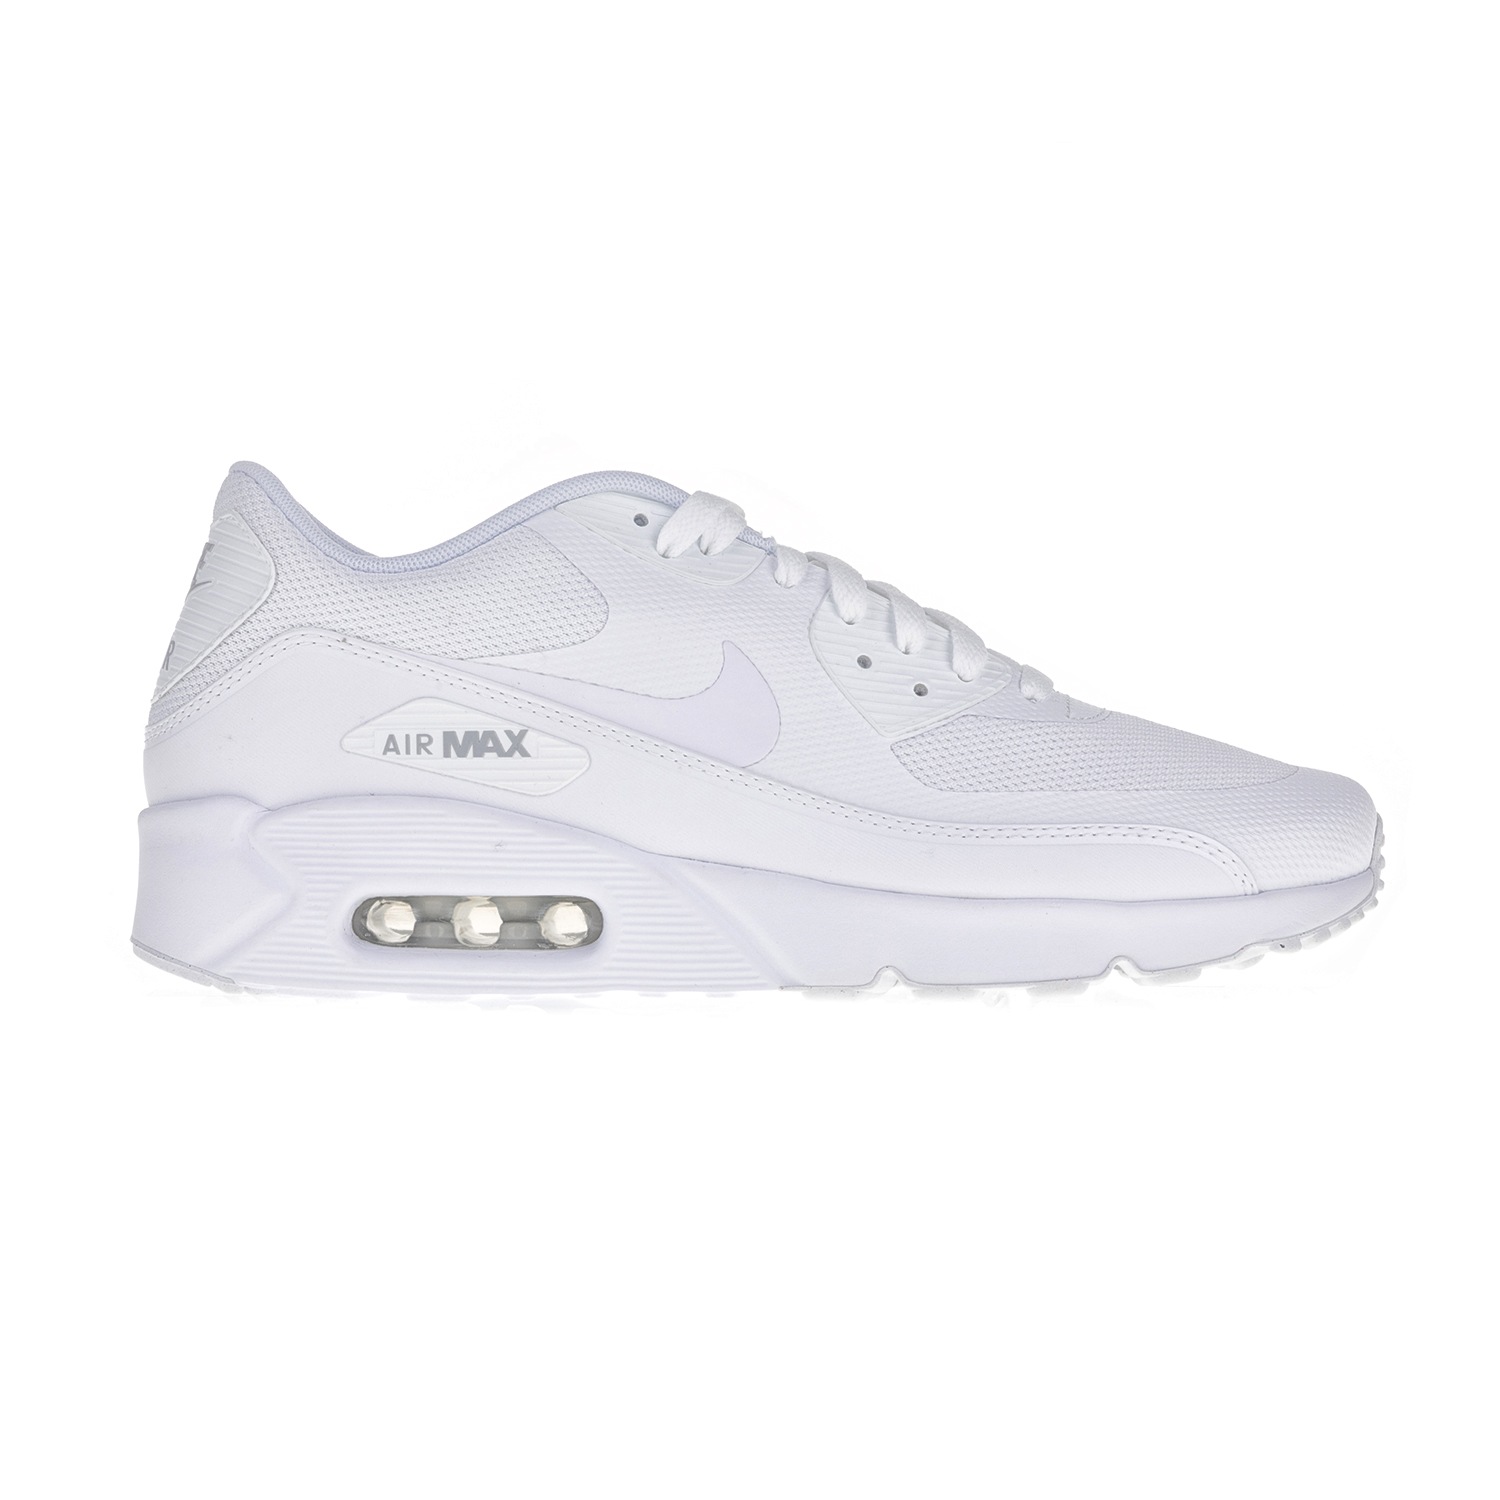 NIKE – Ανδρικά παπούτσια AIR MAX 90 ULTRA 2.0 ESSENTIAL λευκά